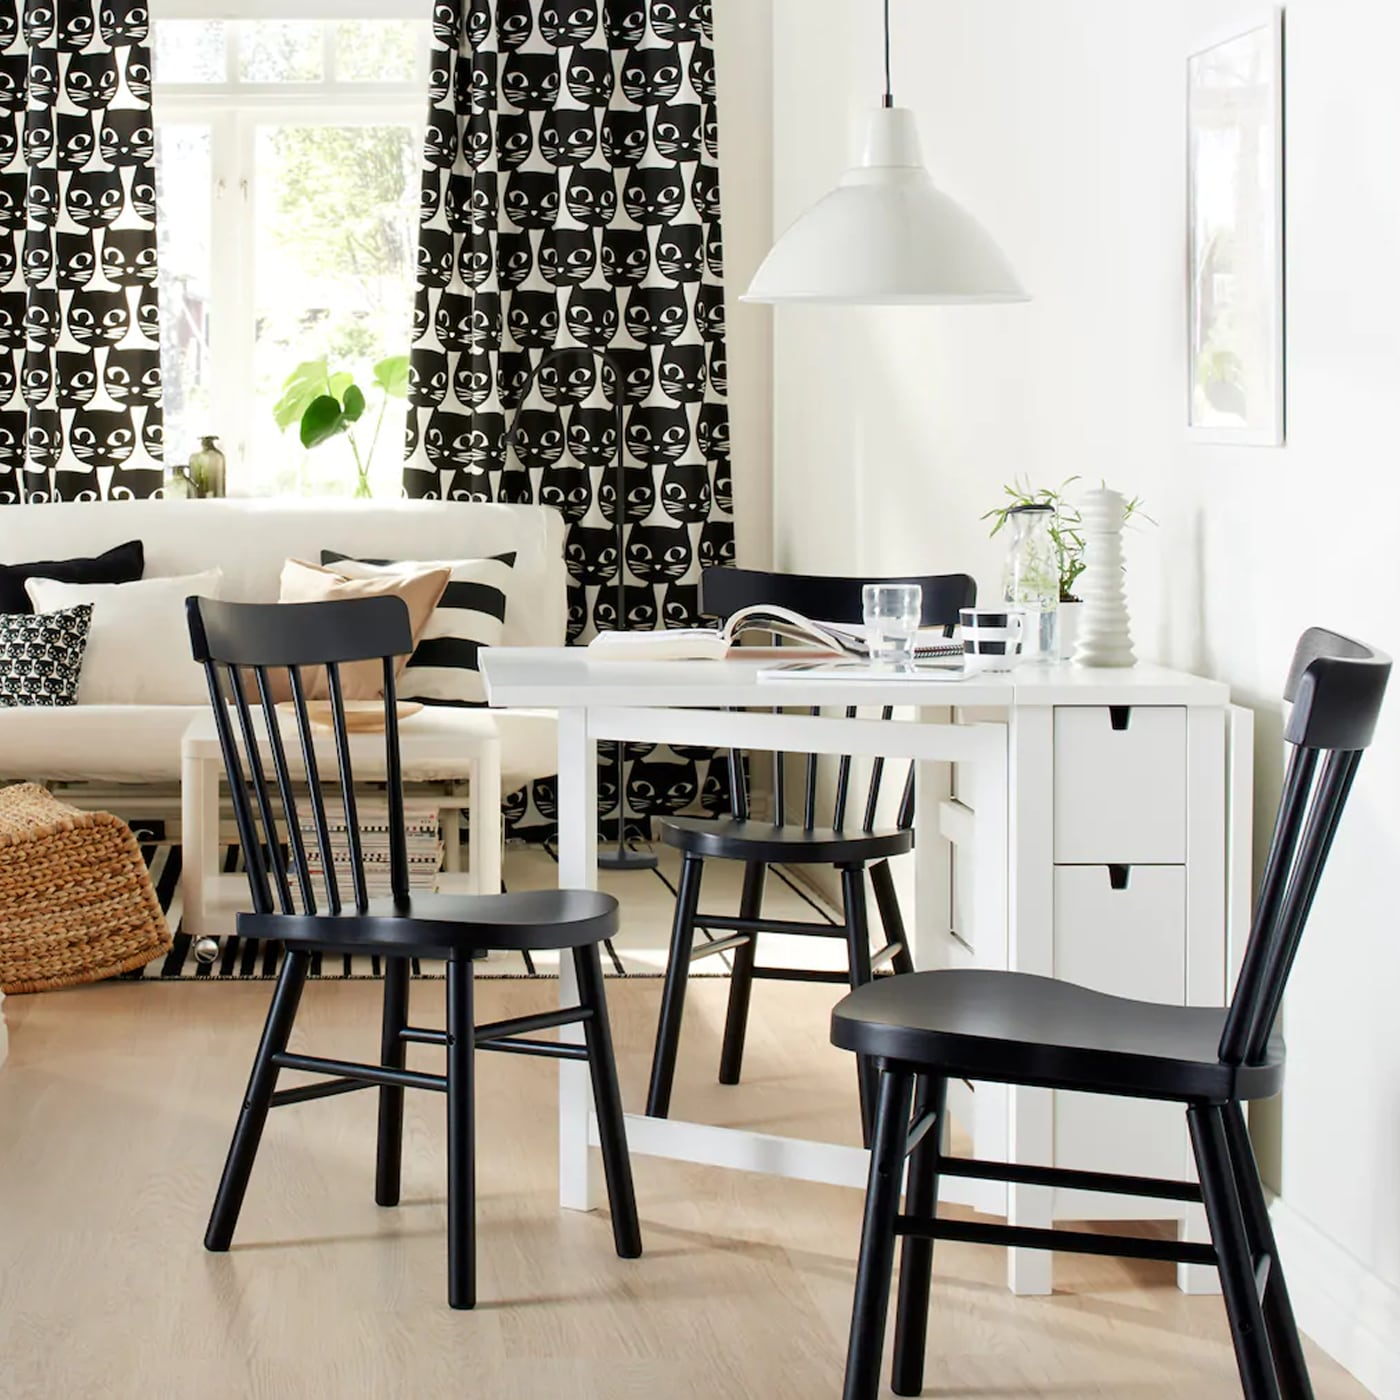 ein tisch f r jede gelegenheit ikea ikea. Black Bedroom Furniture Sets. Home Design Ideas